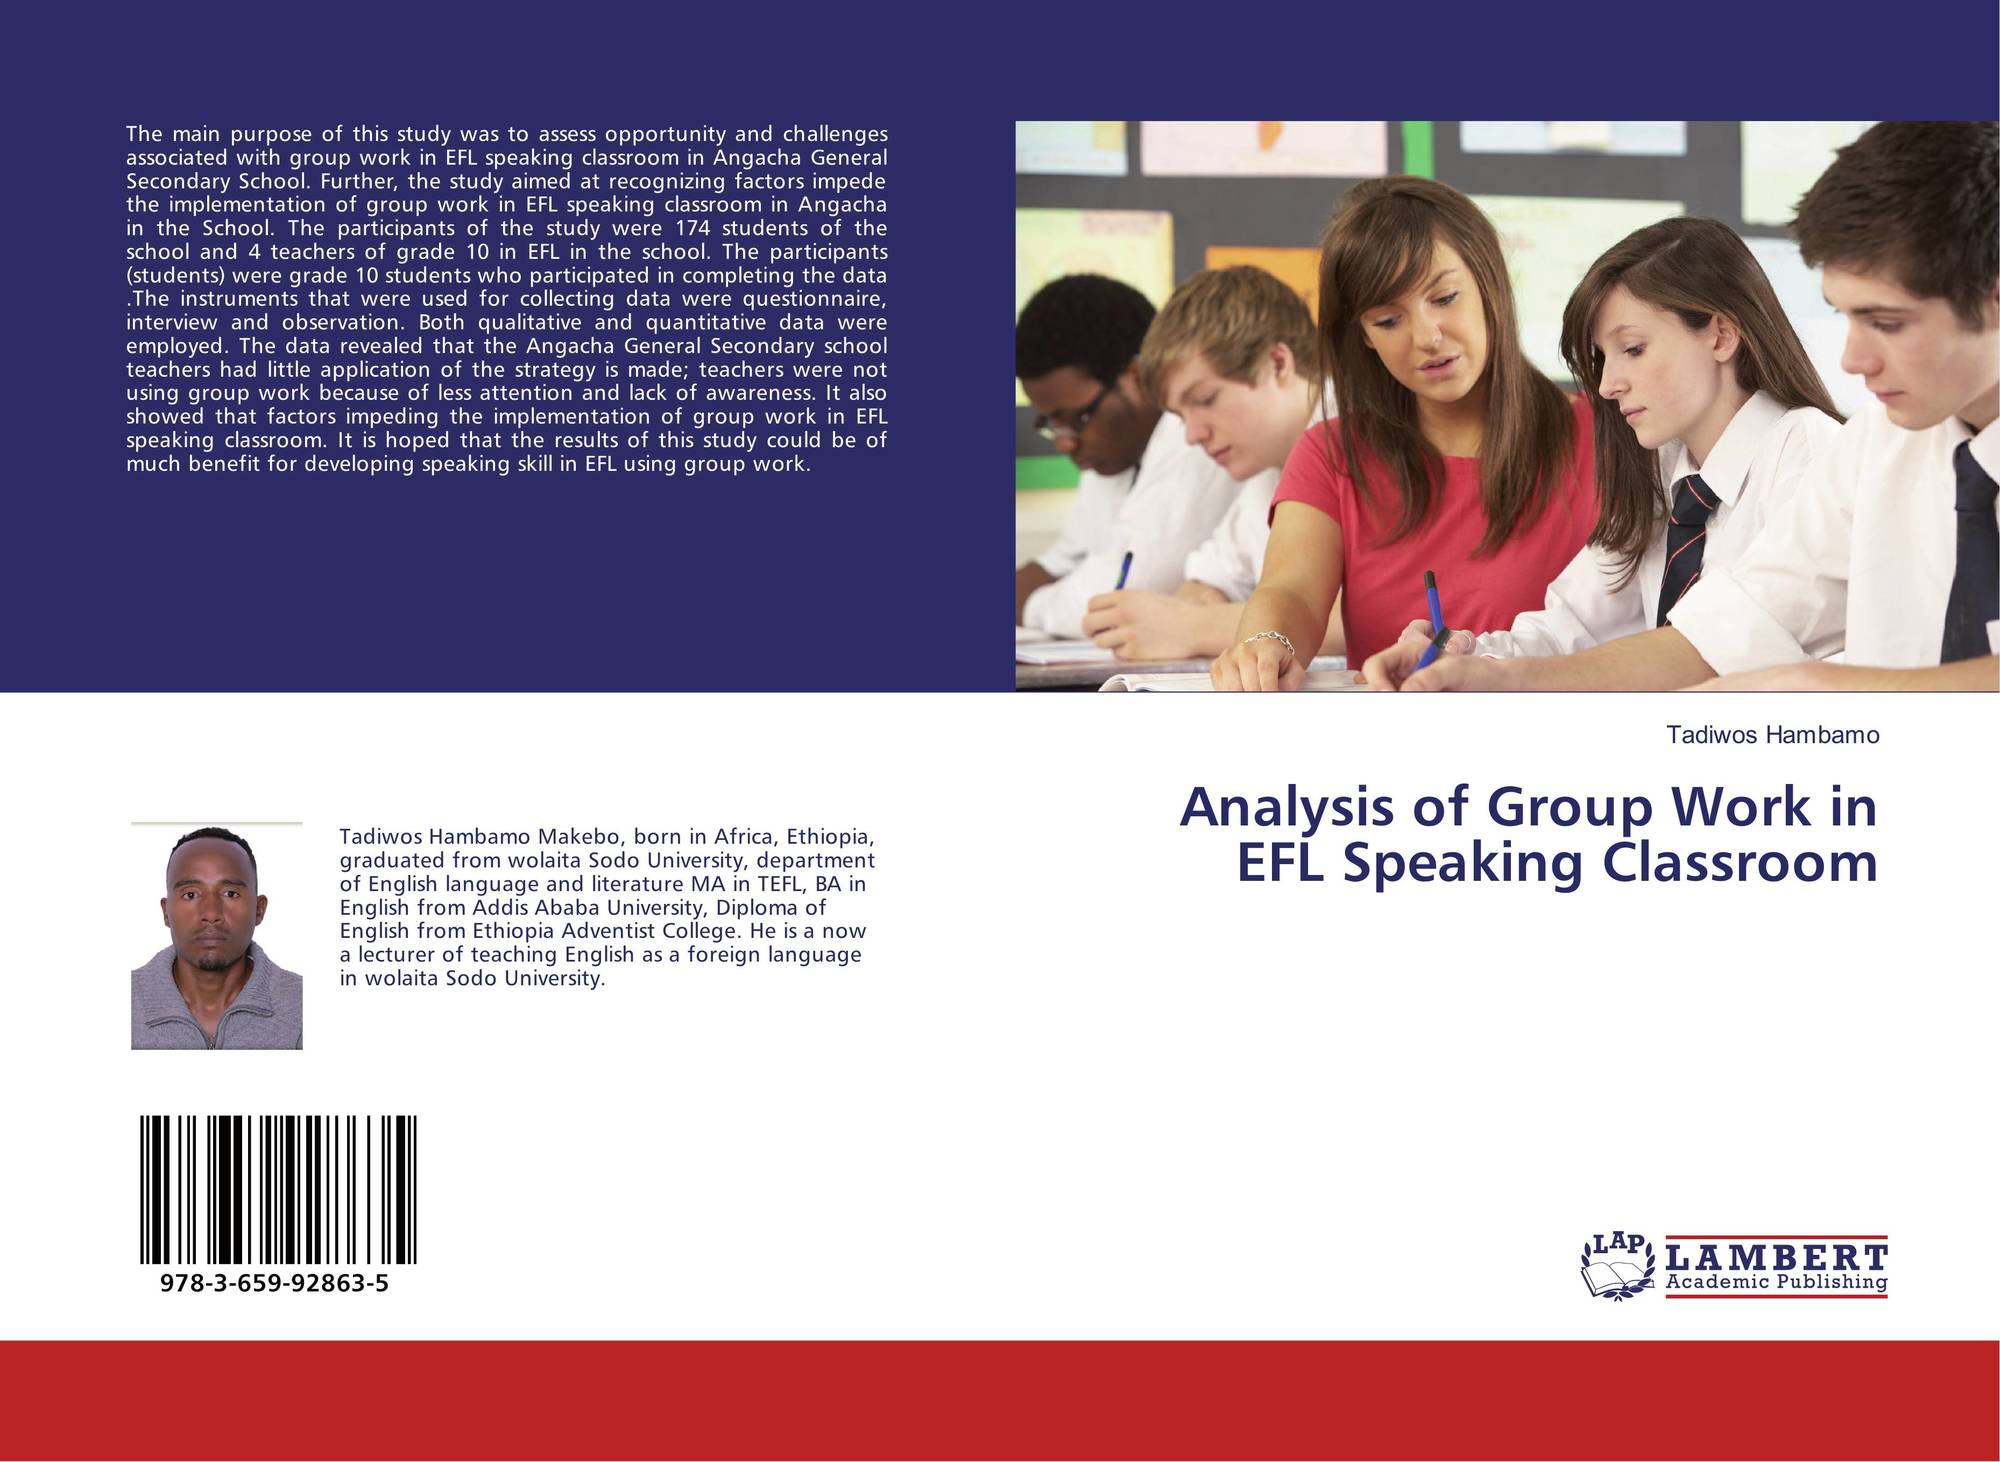 analysis of group work Analysis definition is - a detailed examination of anything complex in order to understand its nature or to determine its essential features : a thorough study.